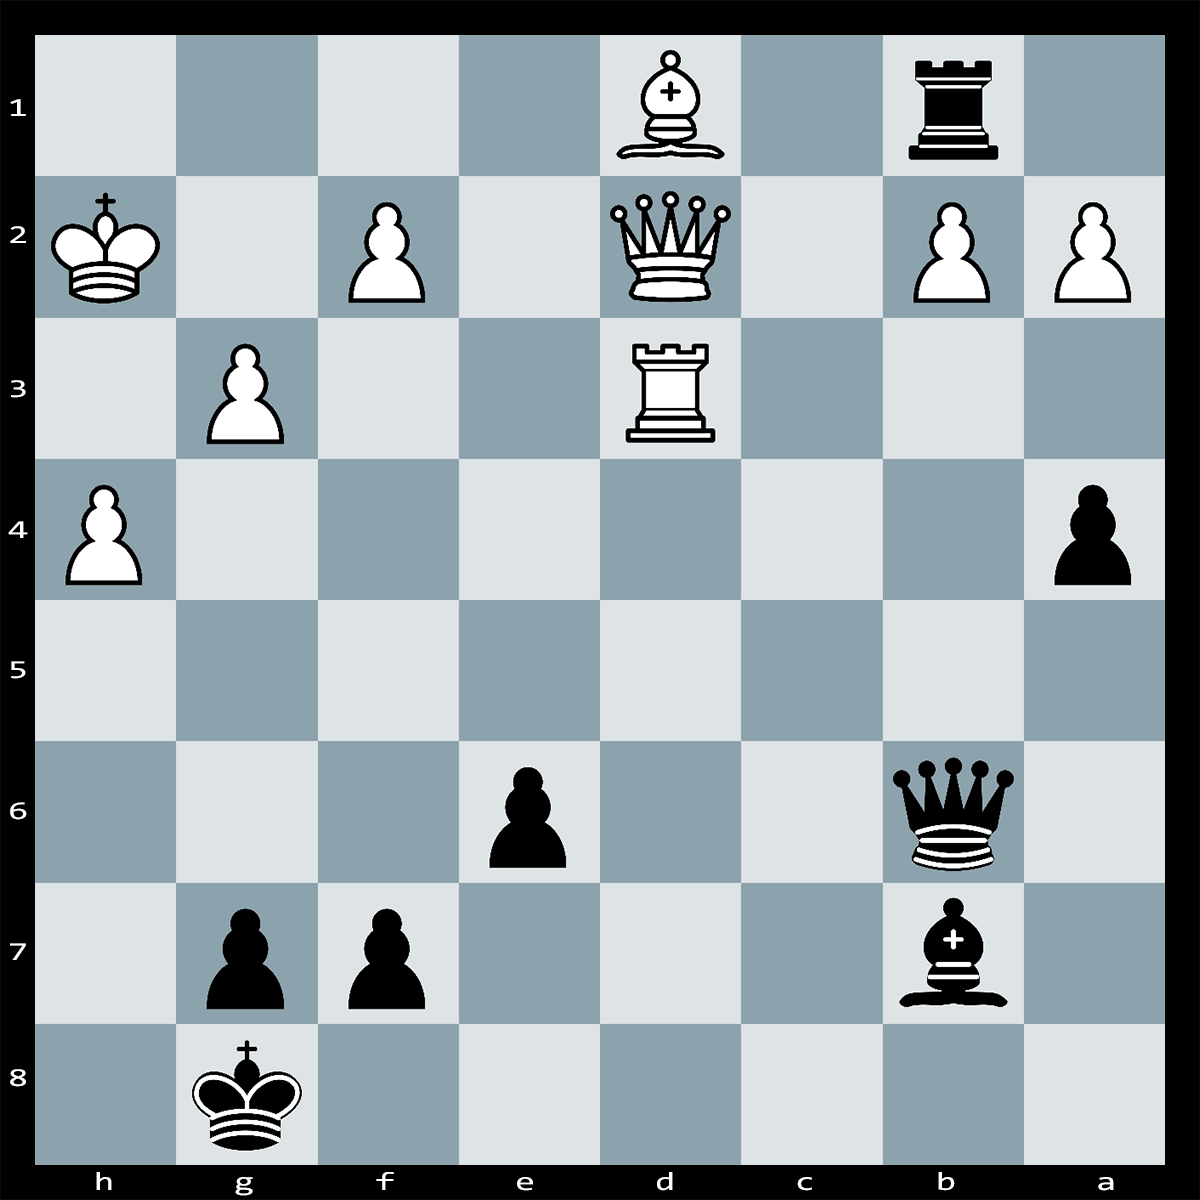 Chess Puzzle #319 | White has an extra pawn on the board, but black has a powerful move that wins the game.